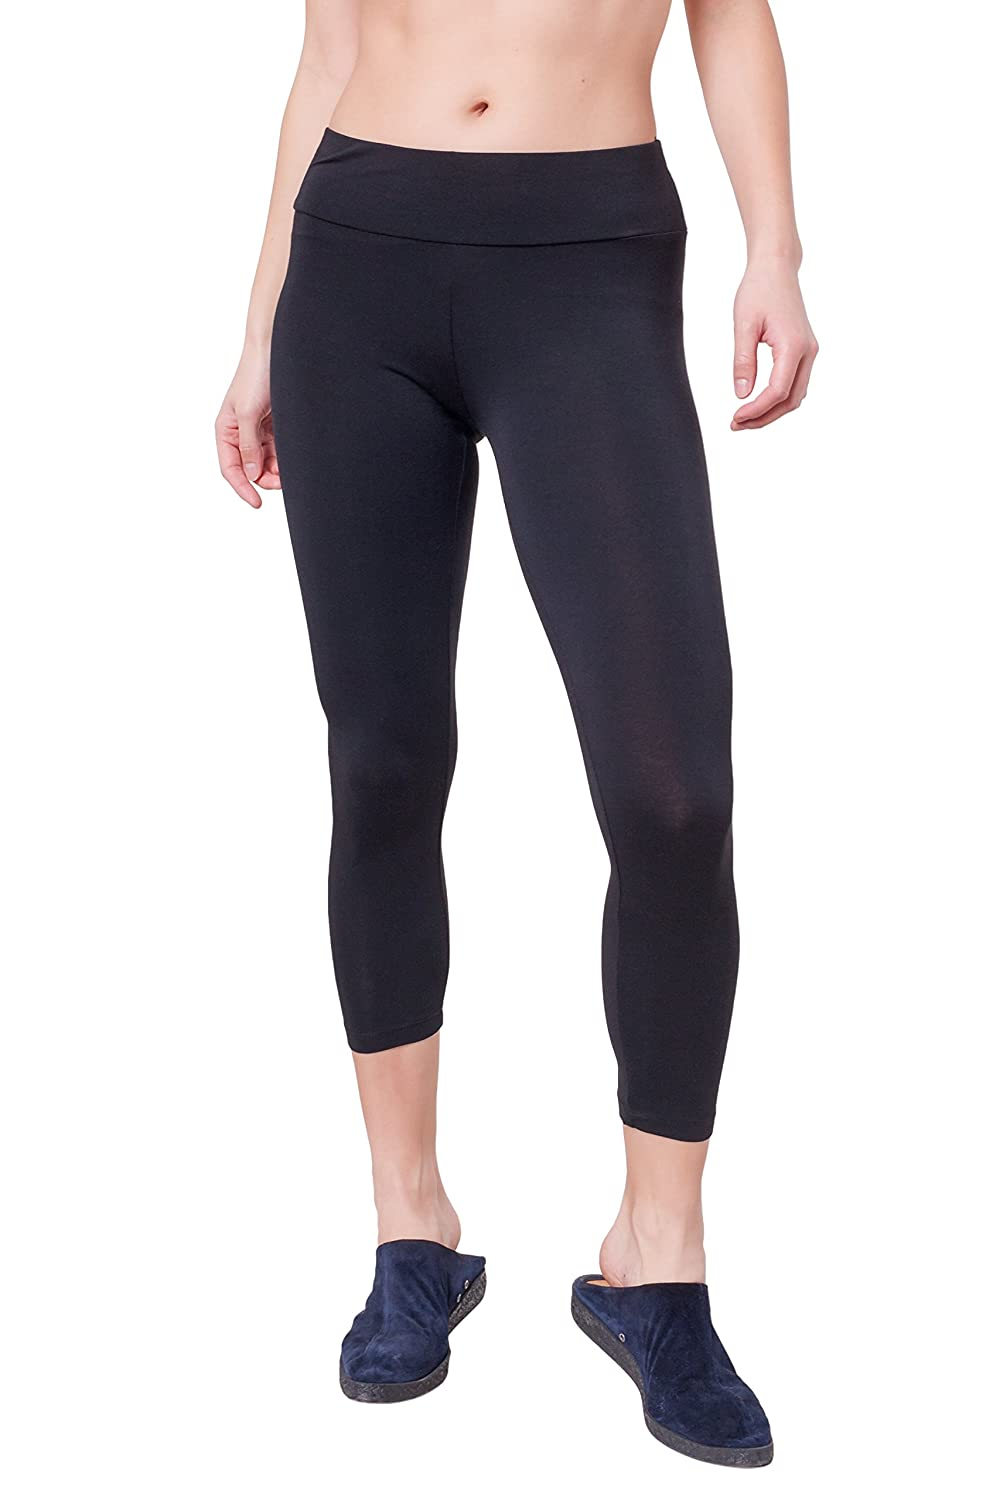 A to Z Cropped Modal Leggings DL-1